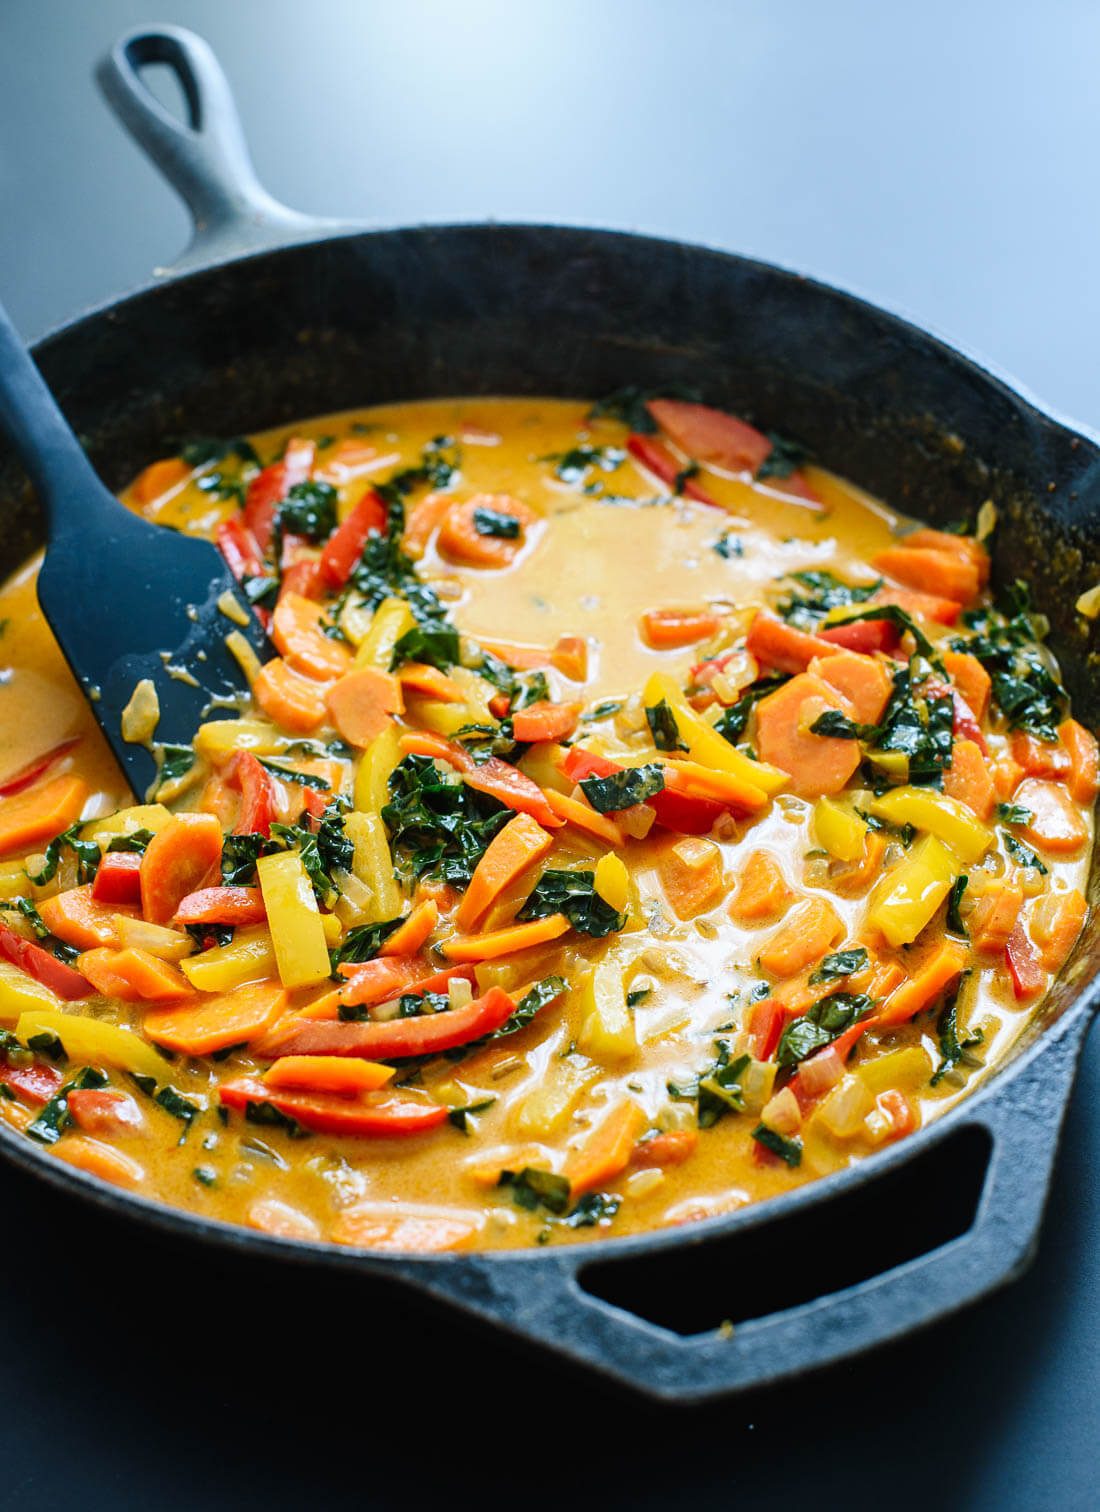 Thai Red Curry Recipe with Vegetables - Cookie and Kate